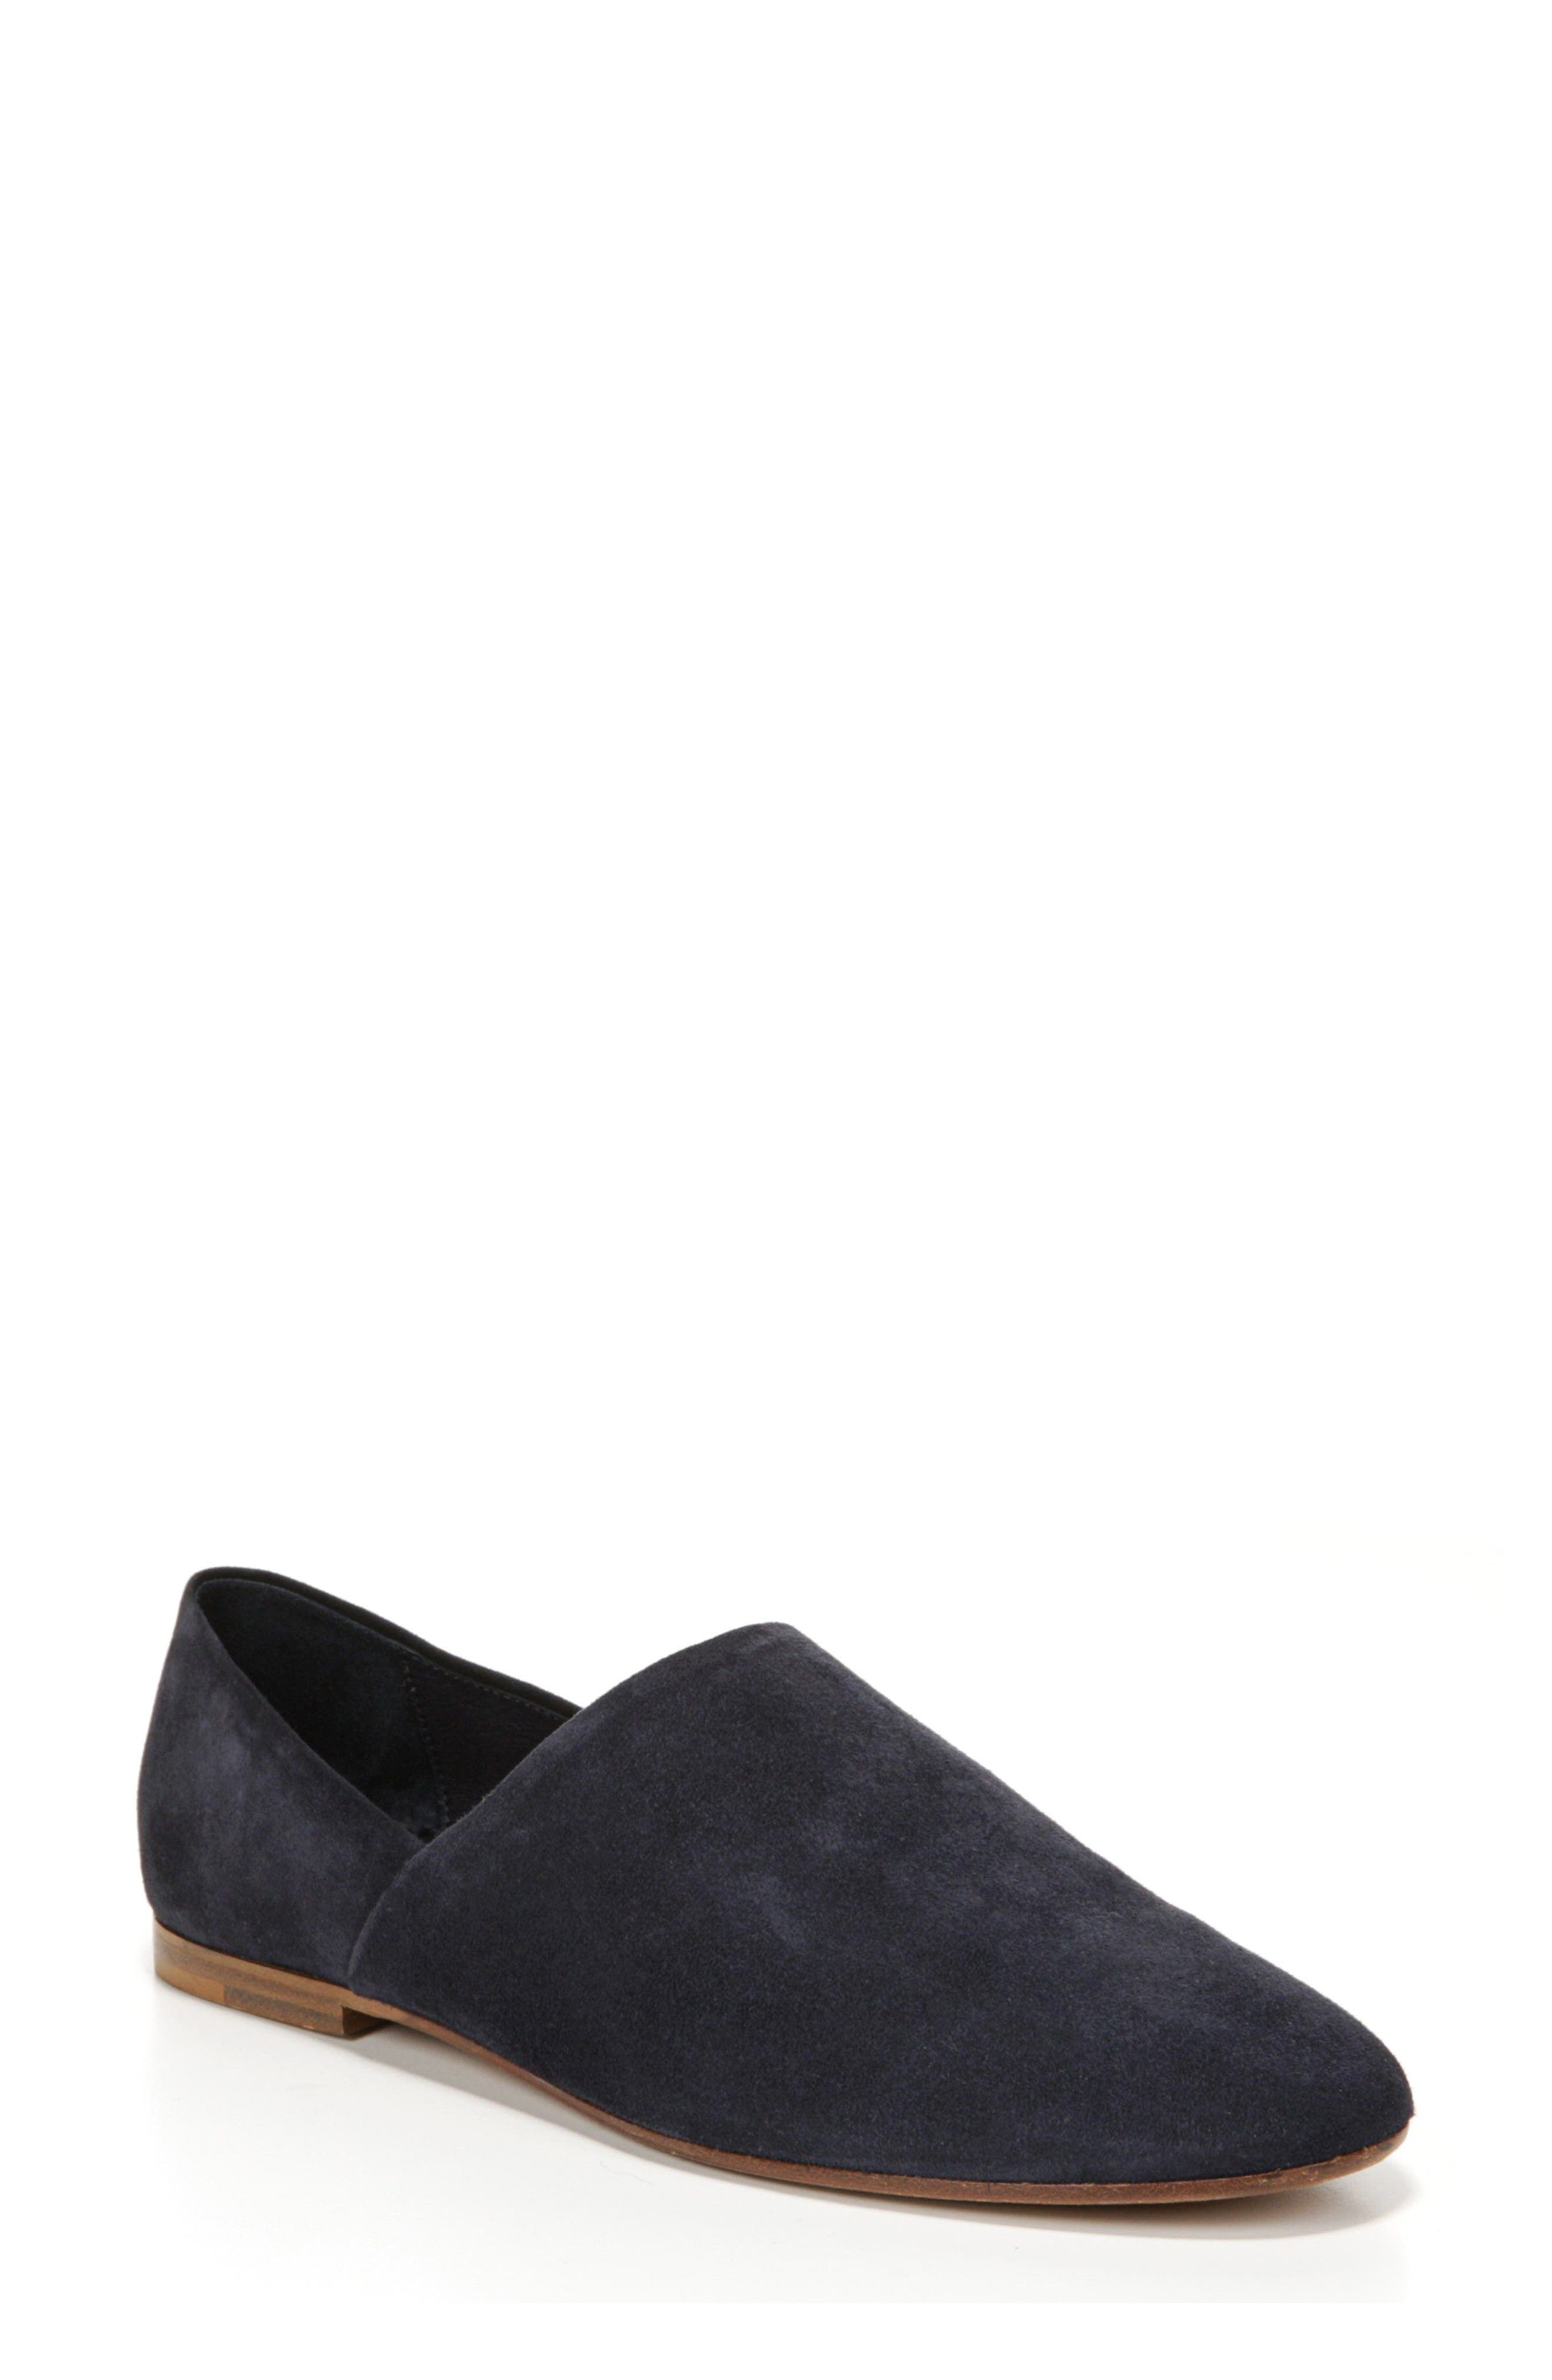 Maude Loafer,                             Main thumbnail 1, color,                             Coastal Suede